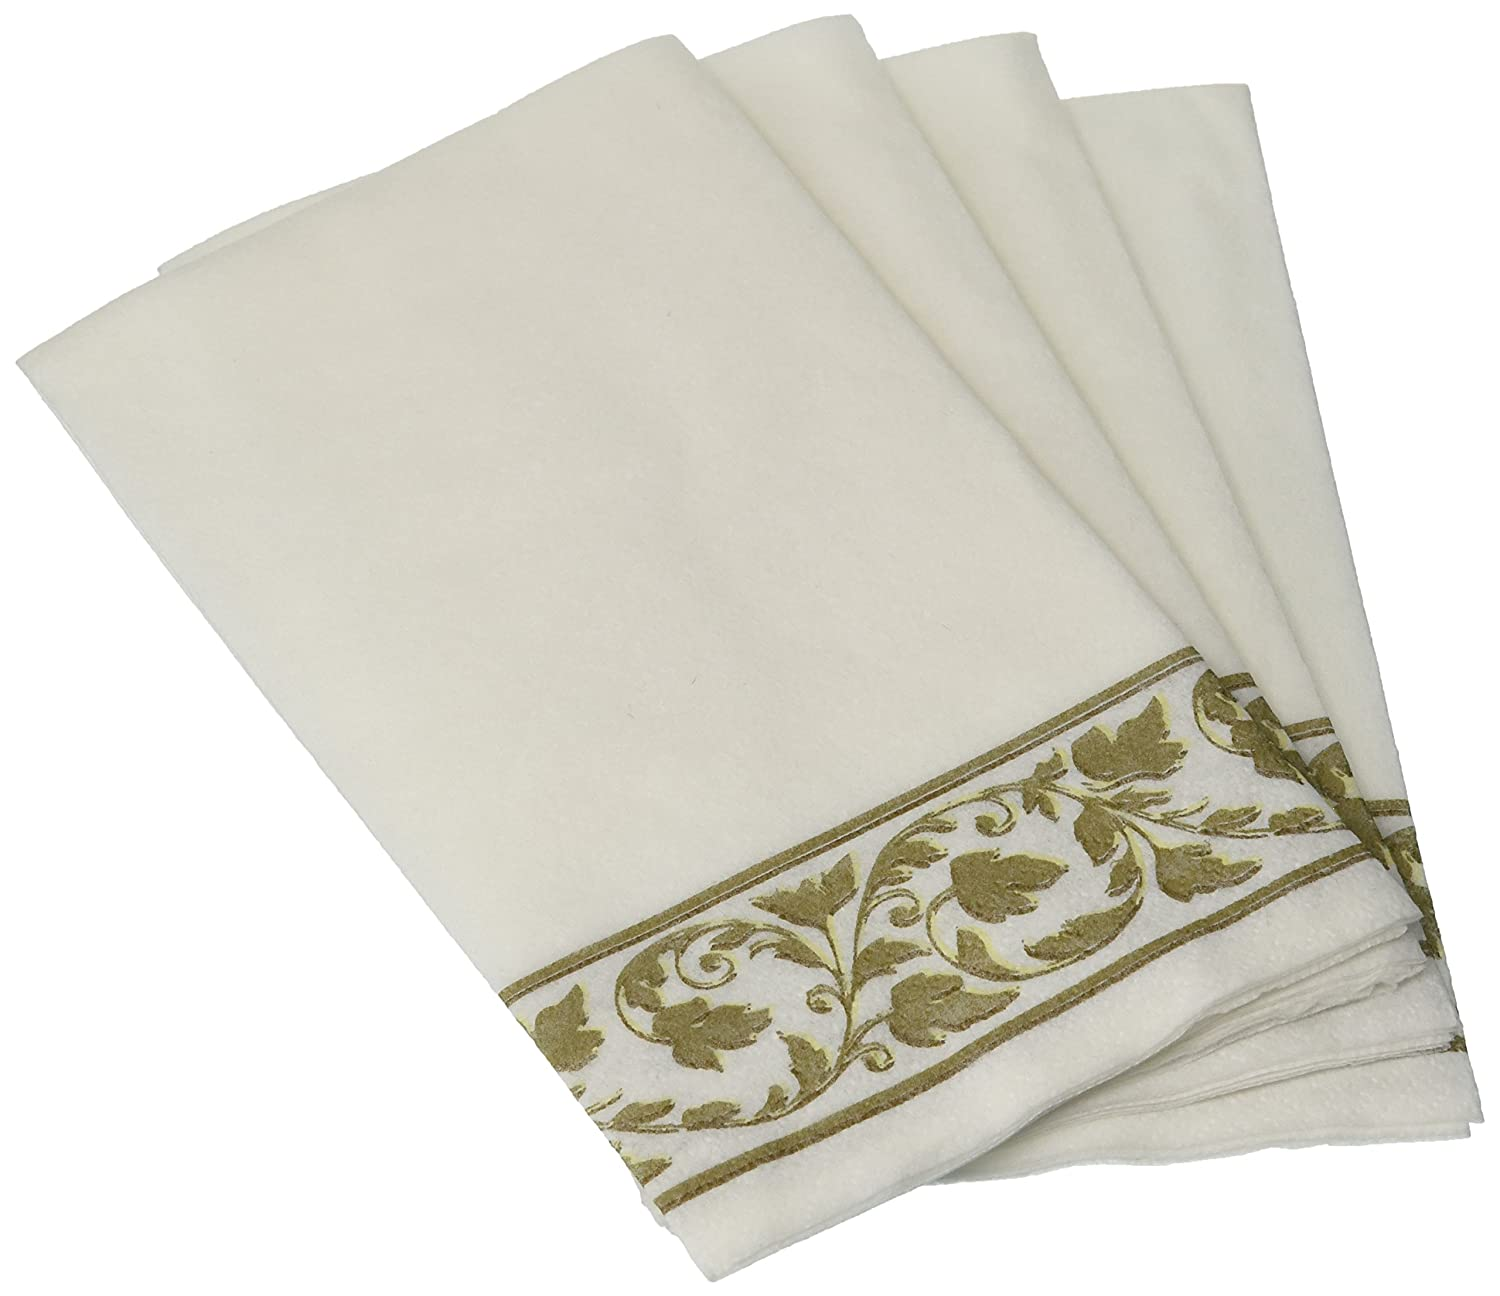 Amscan 536500 Guest Towels Party Supplies 24 pieces White